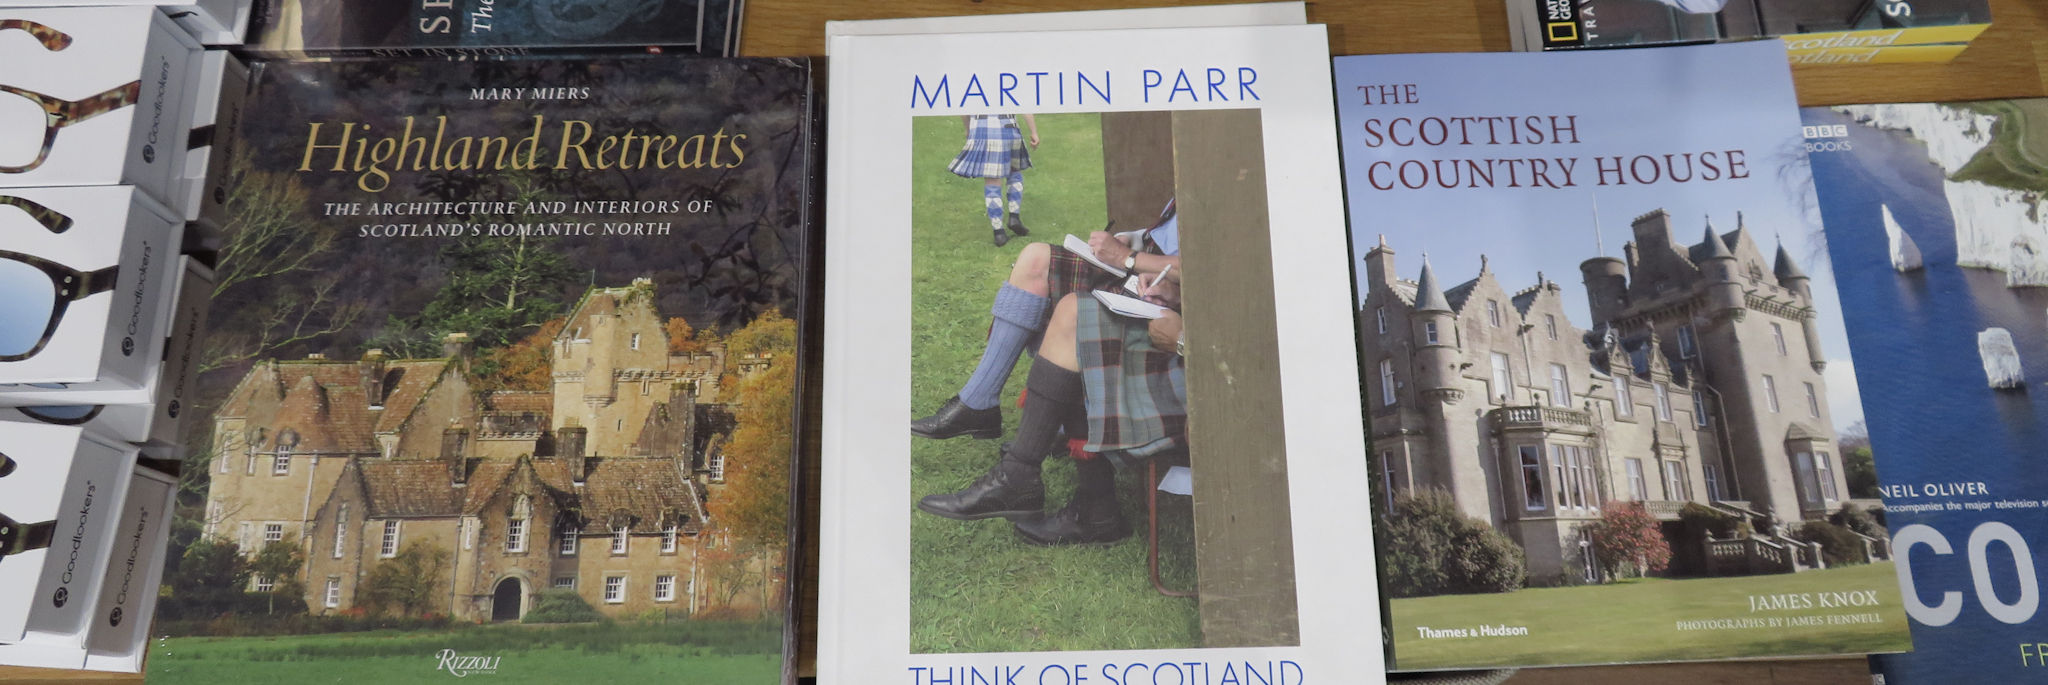 2019 Book festivals in Scotland | Accommodation with